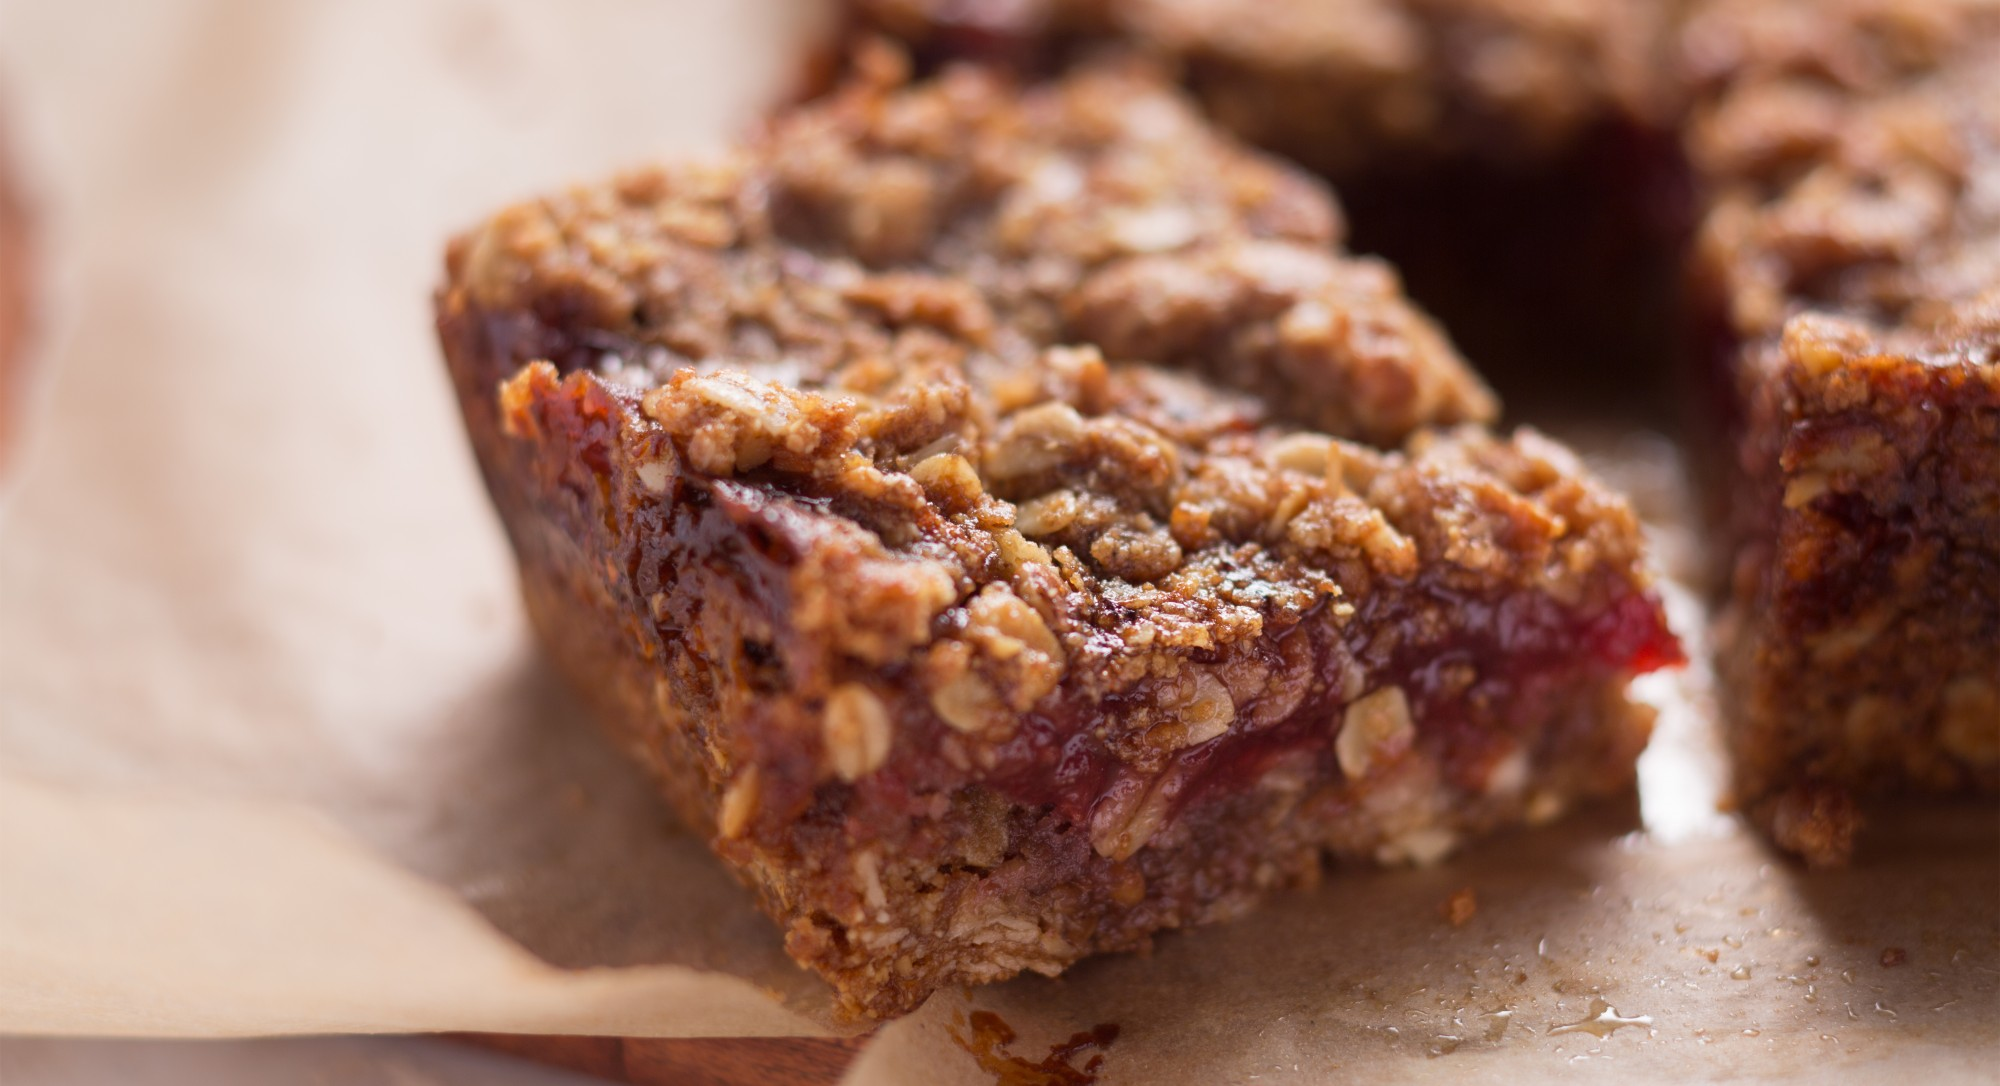 Treat Yourself To These Warm Oat Bars With Raspberry Jam